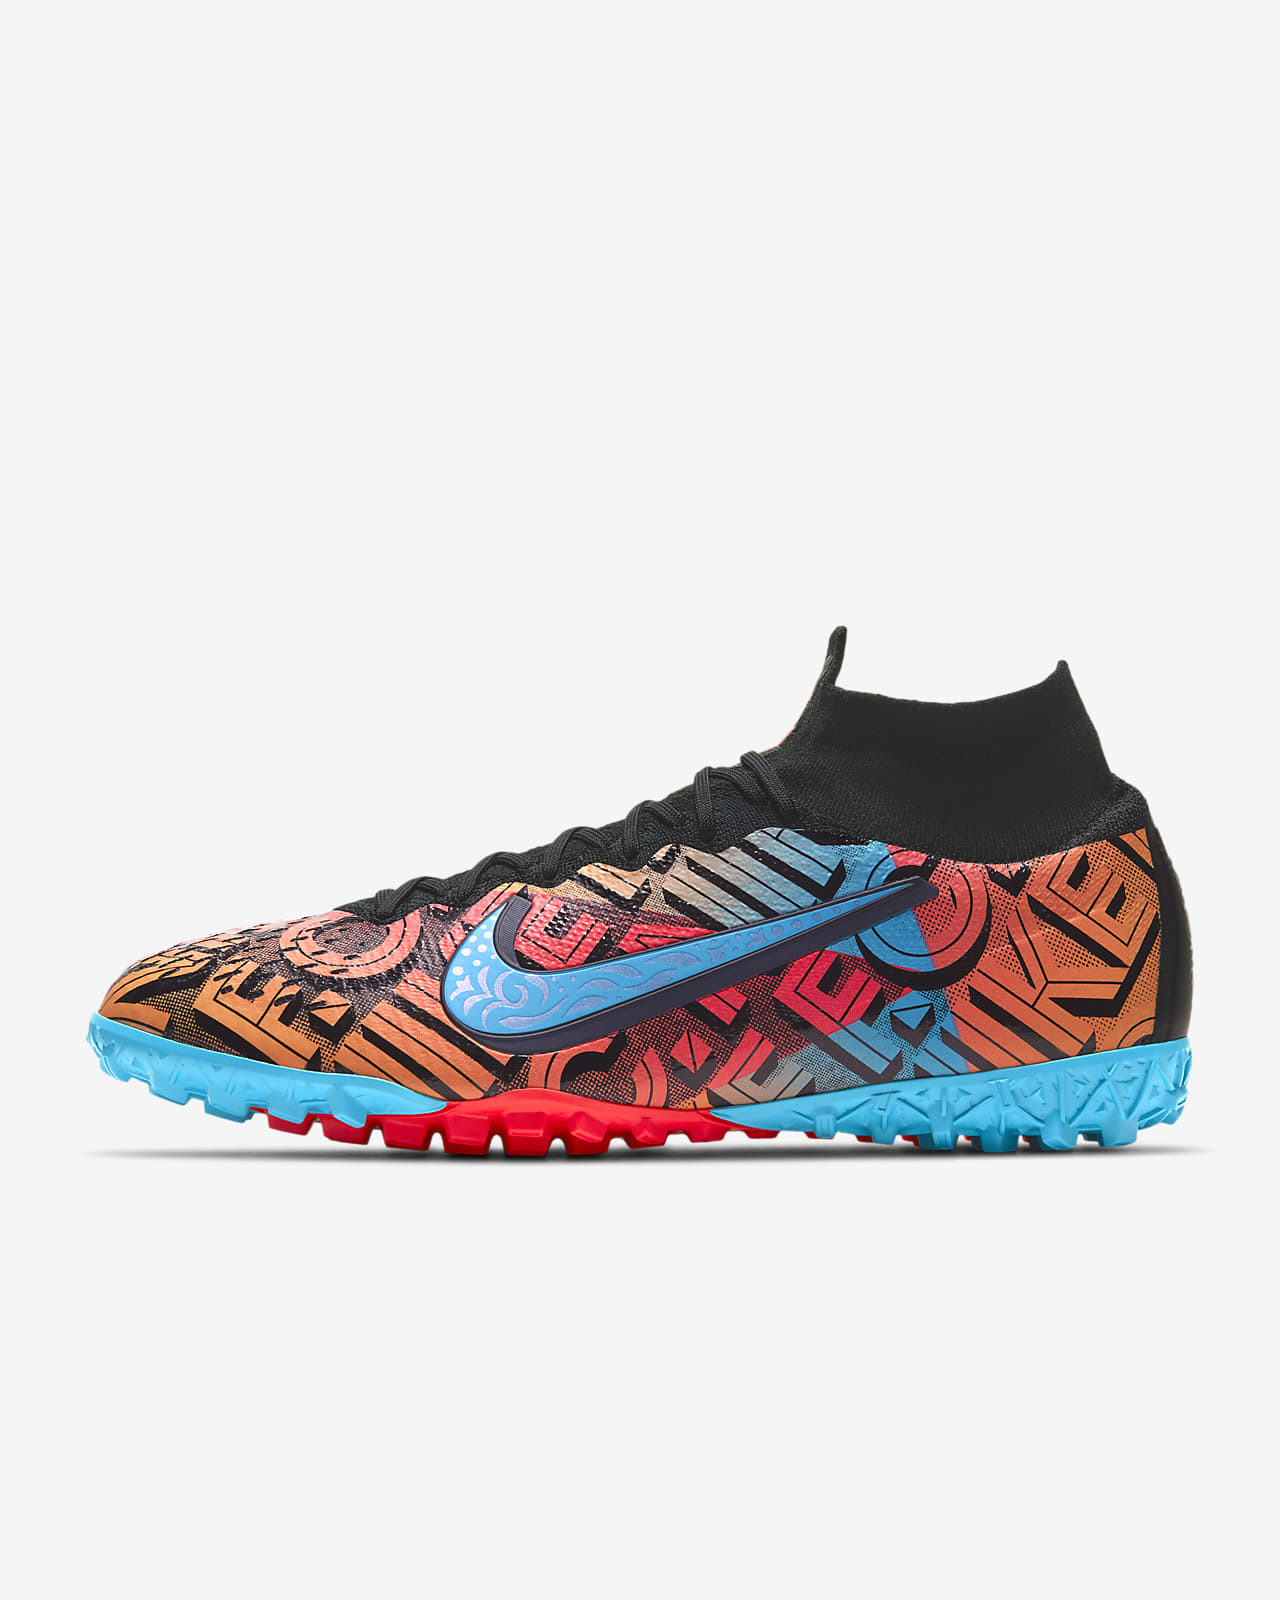 Nike Mercurial South Mexico City Superfly 7 Elite TF Artificial-Turf Soccer Shoe